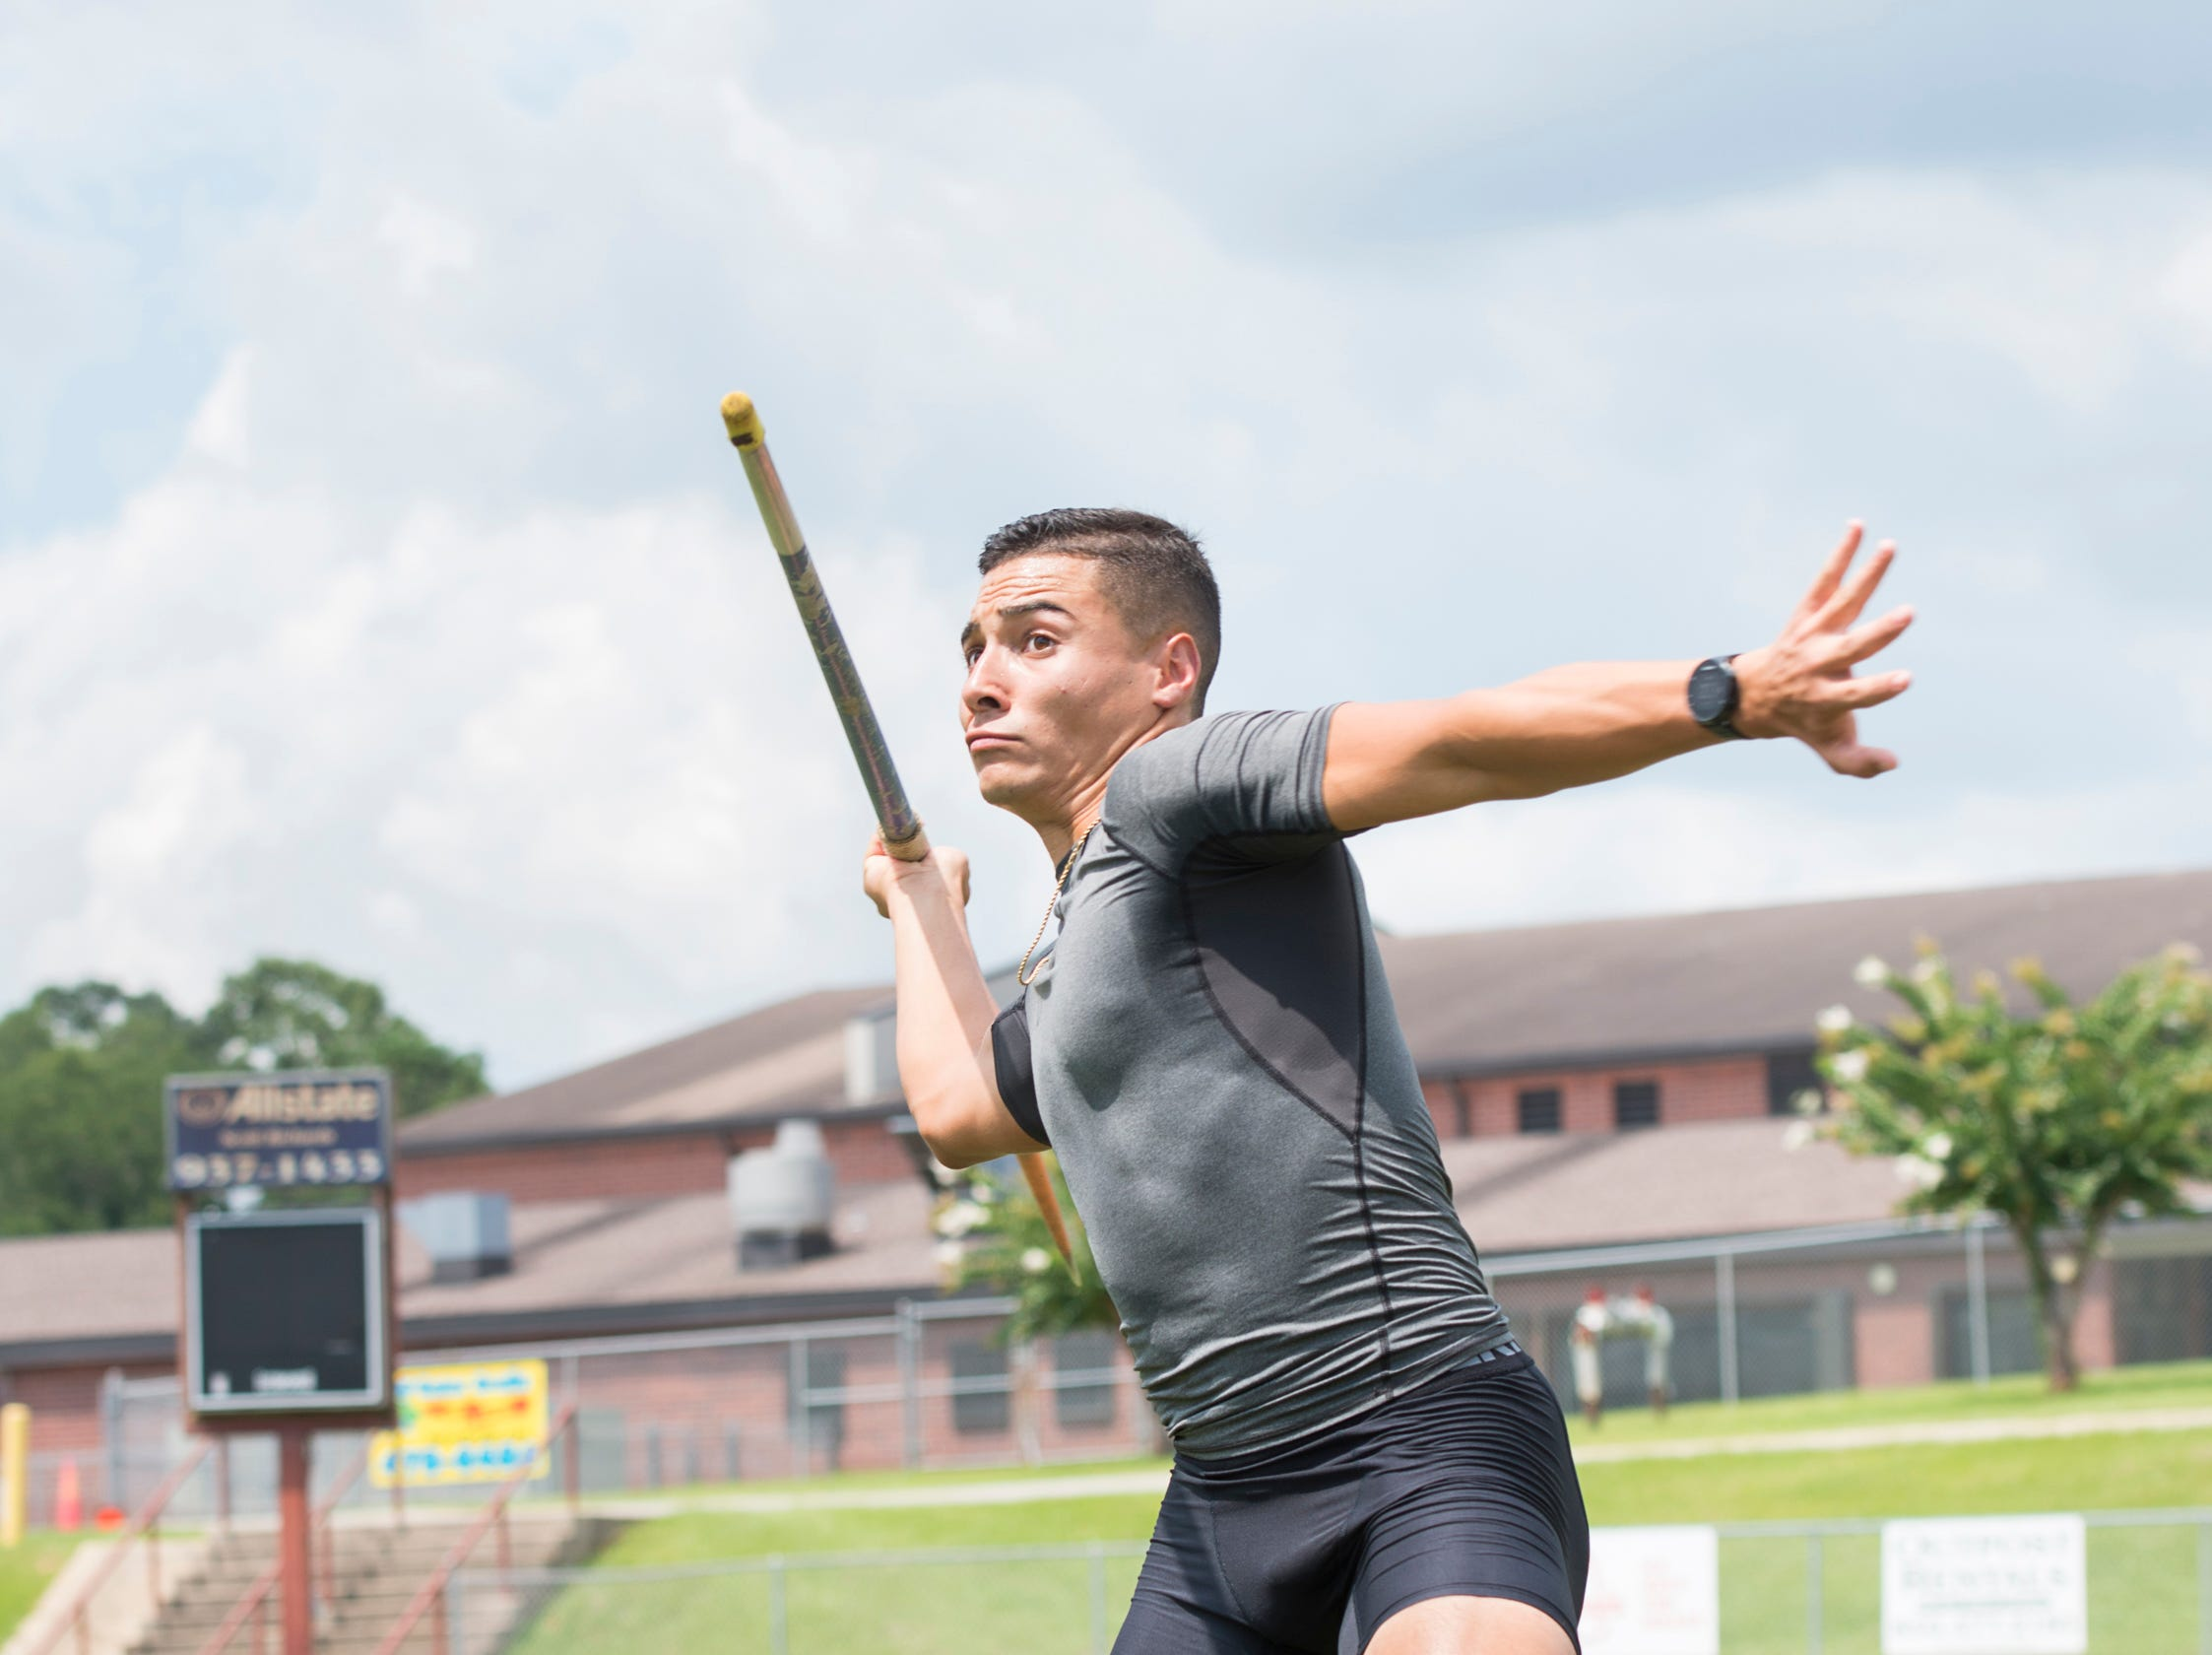 Decathlete Joseph Zayszly shows his javelin throwing technique at Tate High School in Pensacola on Tuesday, July 24, 2018.